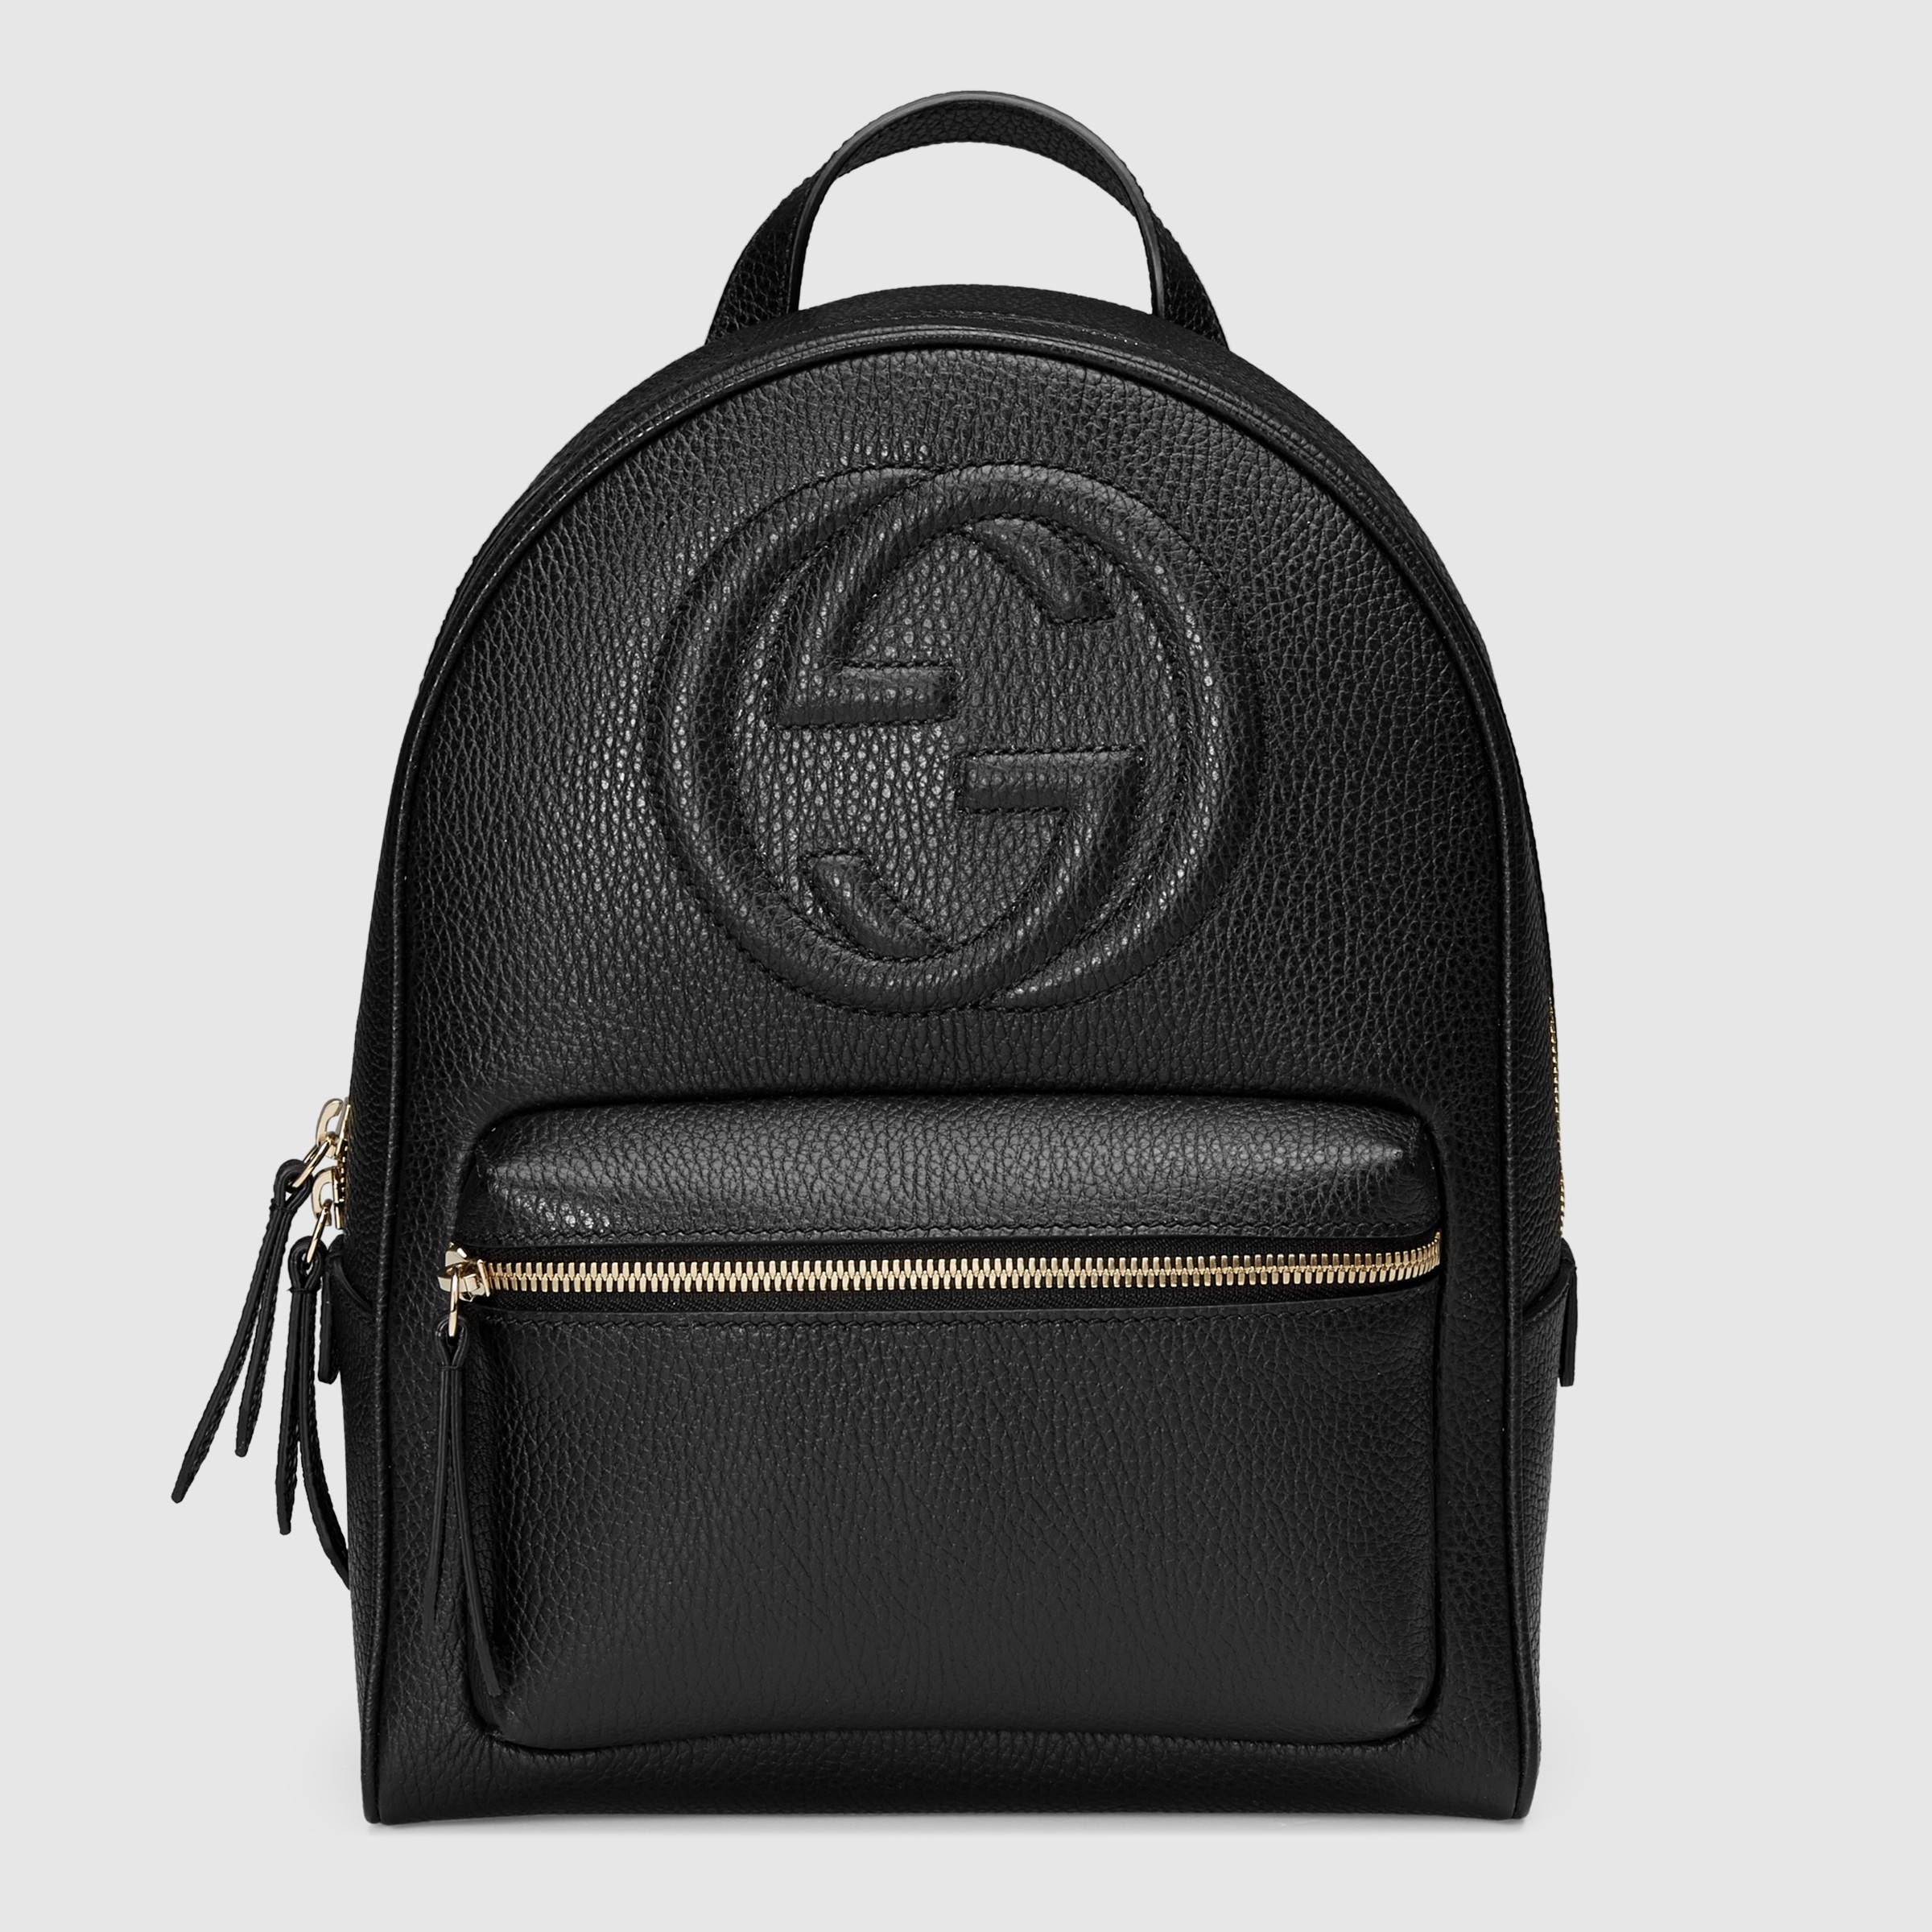 Gucci Backpack Girls